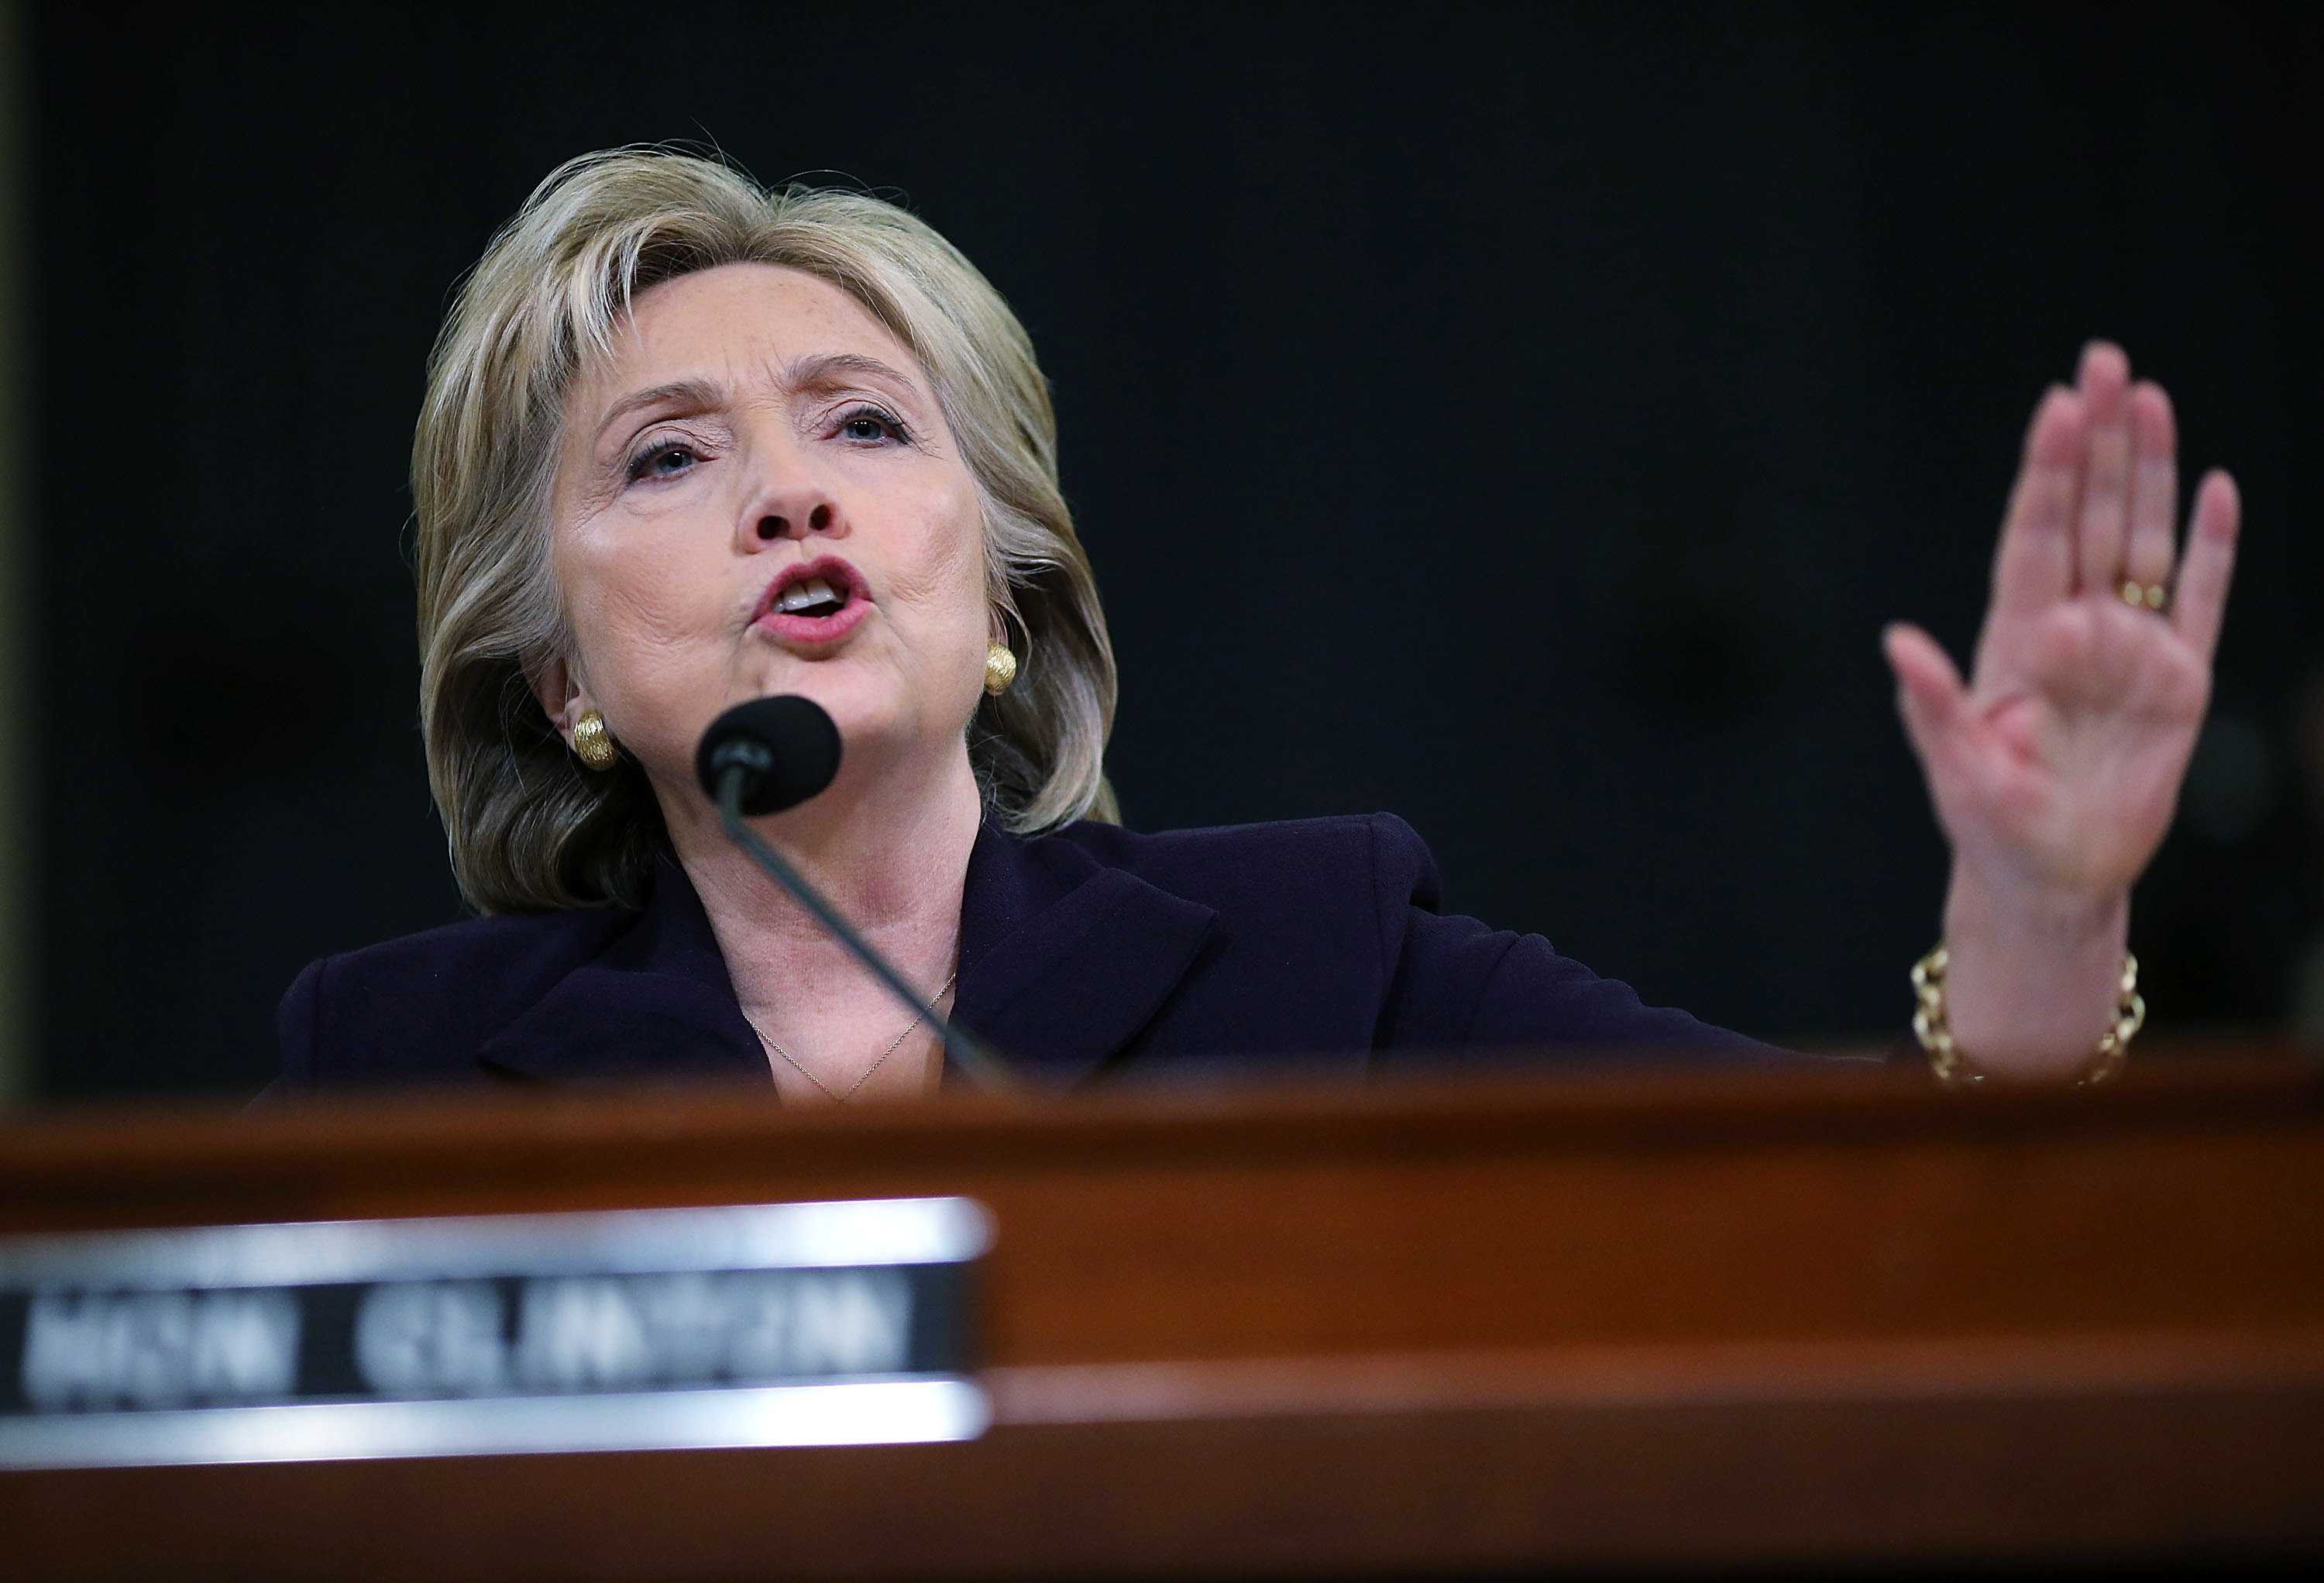 Democratic presidential candidate and former Secretary of State Hillary Clinton testifies before the House Select Committee on Benghazi October 22, 2015, on Capitol Hill in Washington, DC.